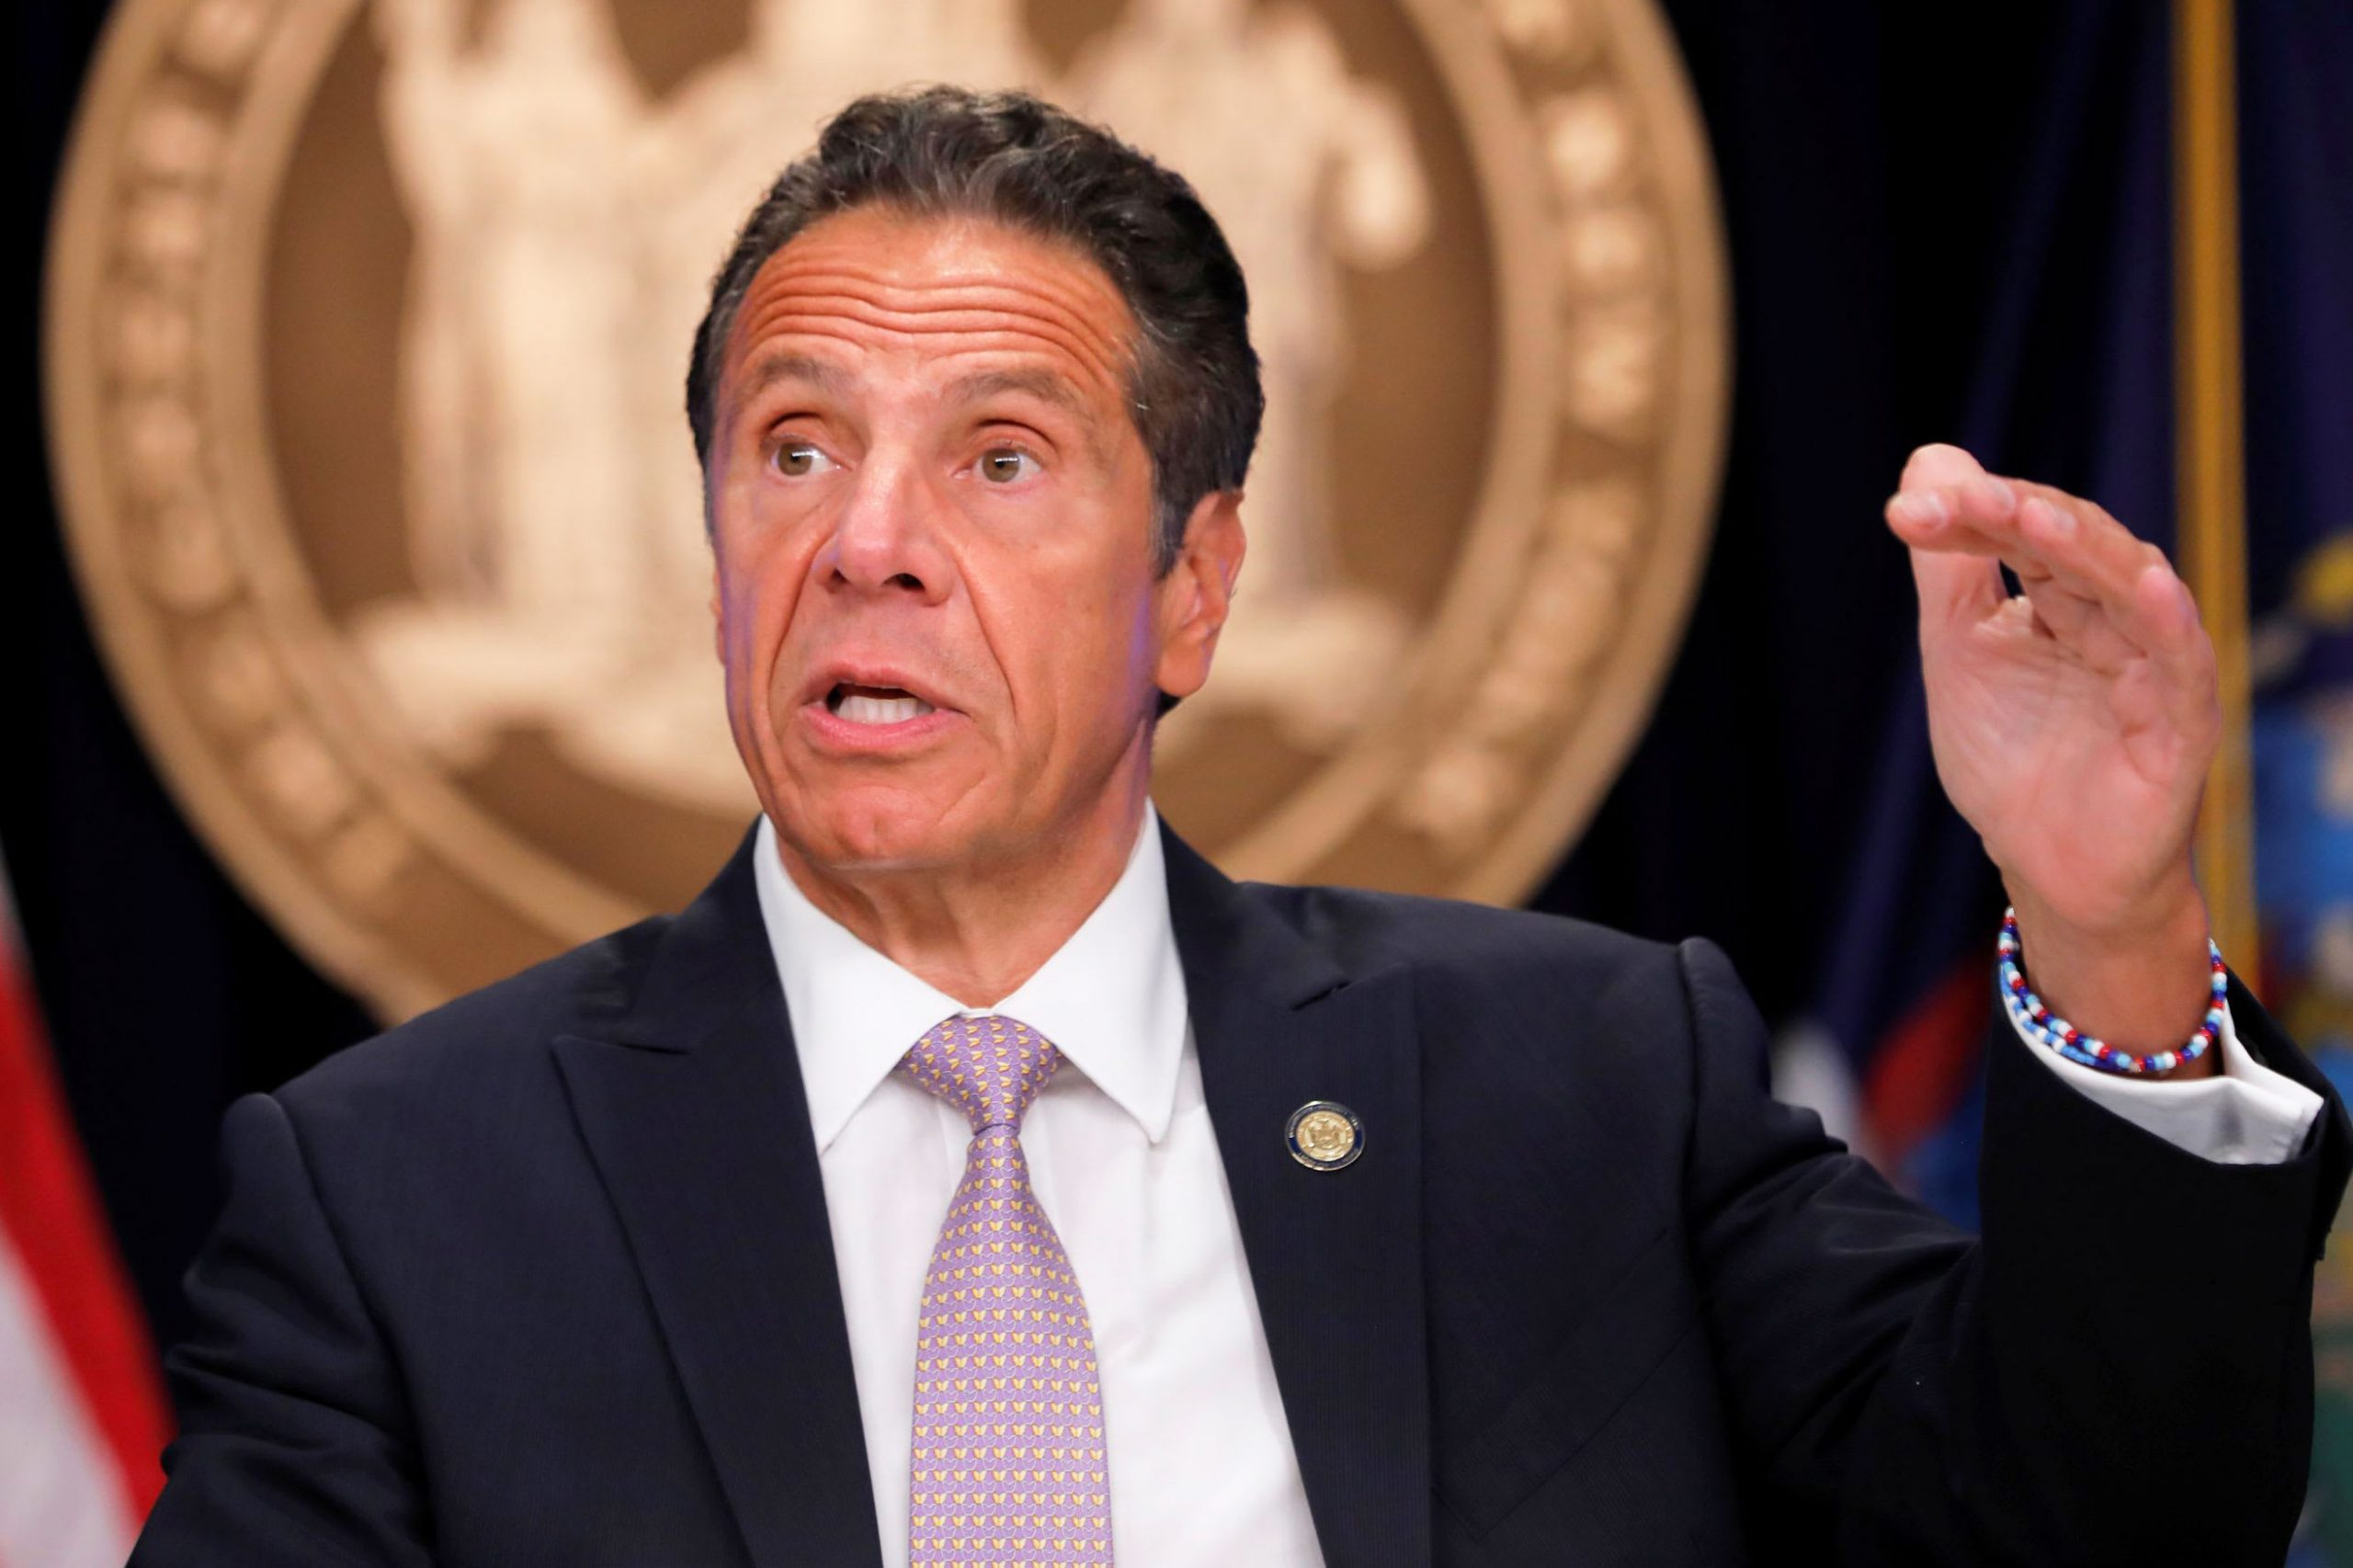 New York Gov. Cuomo says states want U.S. funds to distribute